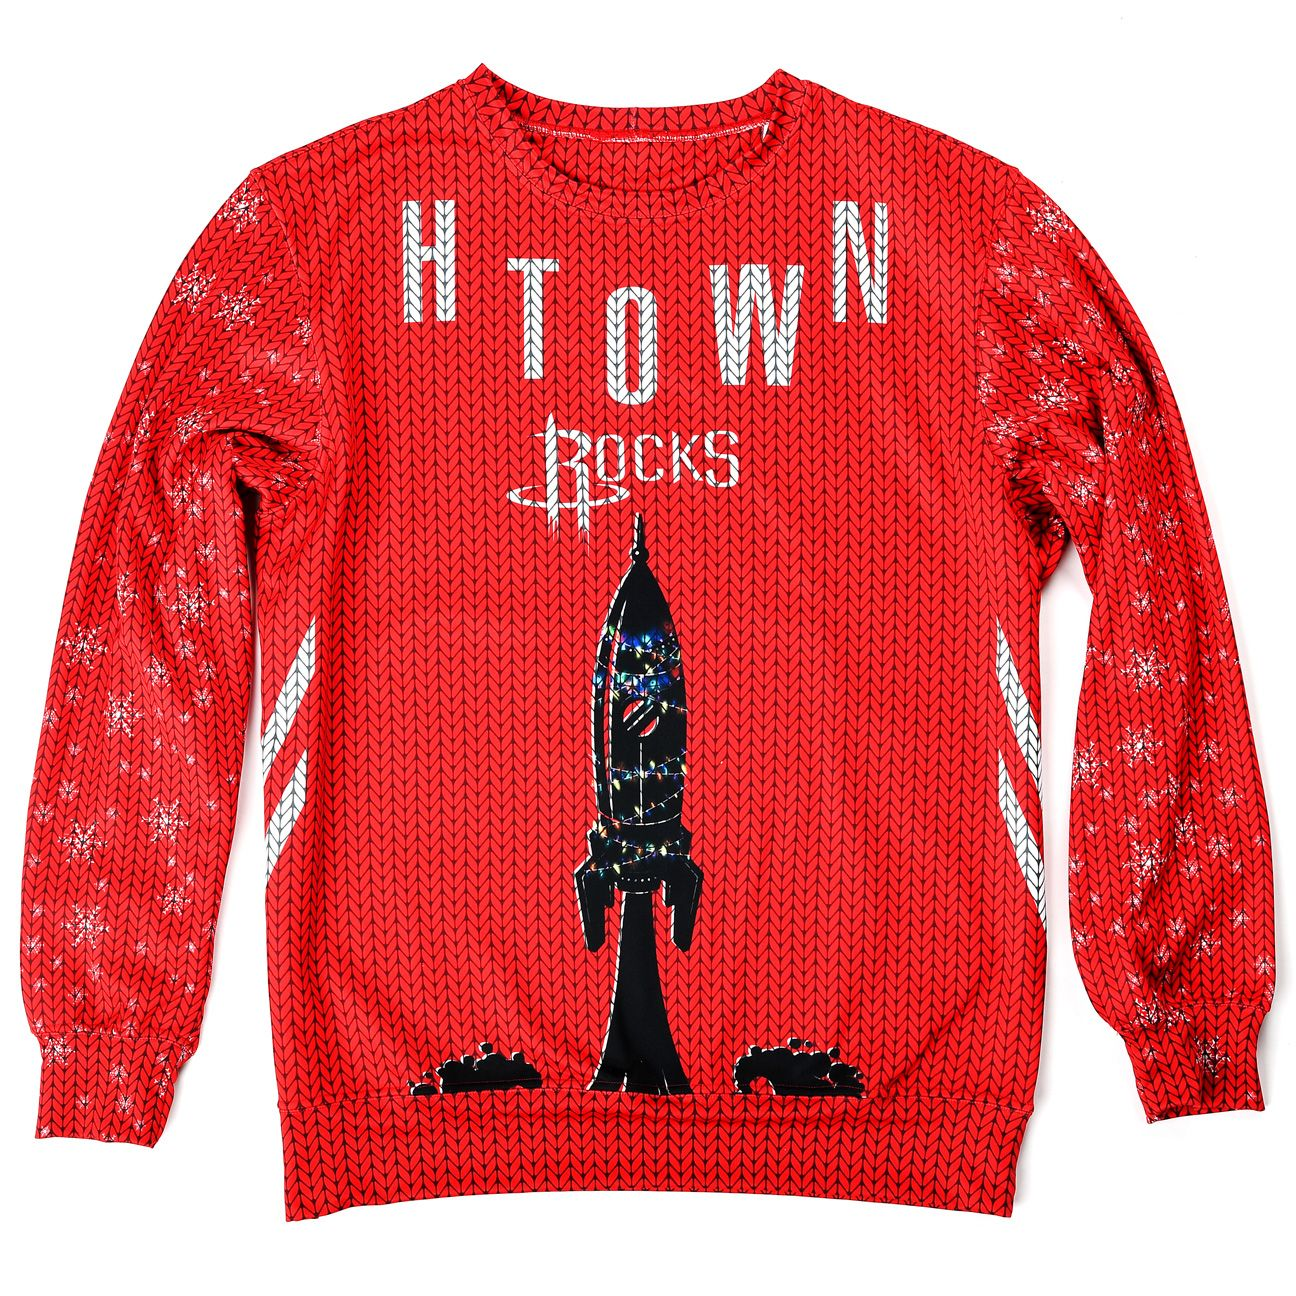 Rockets ugly sweater